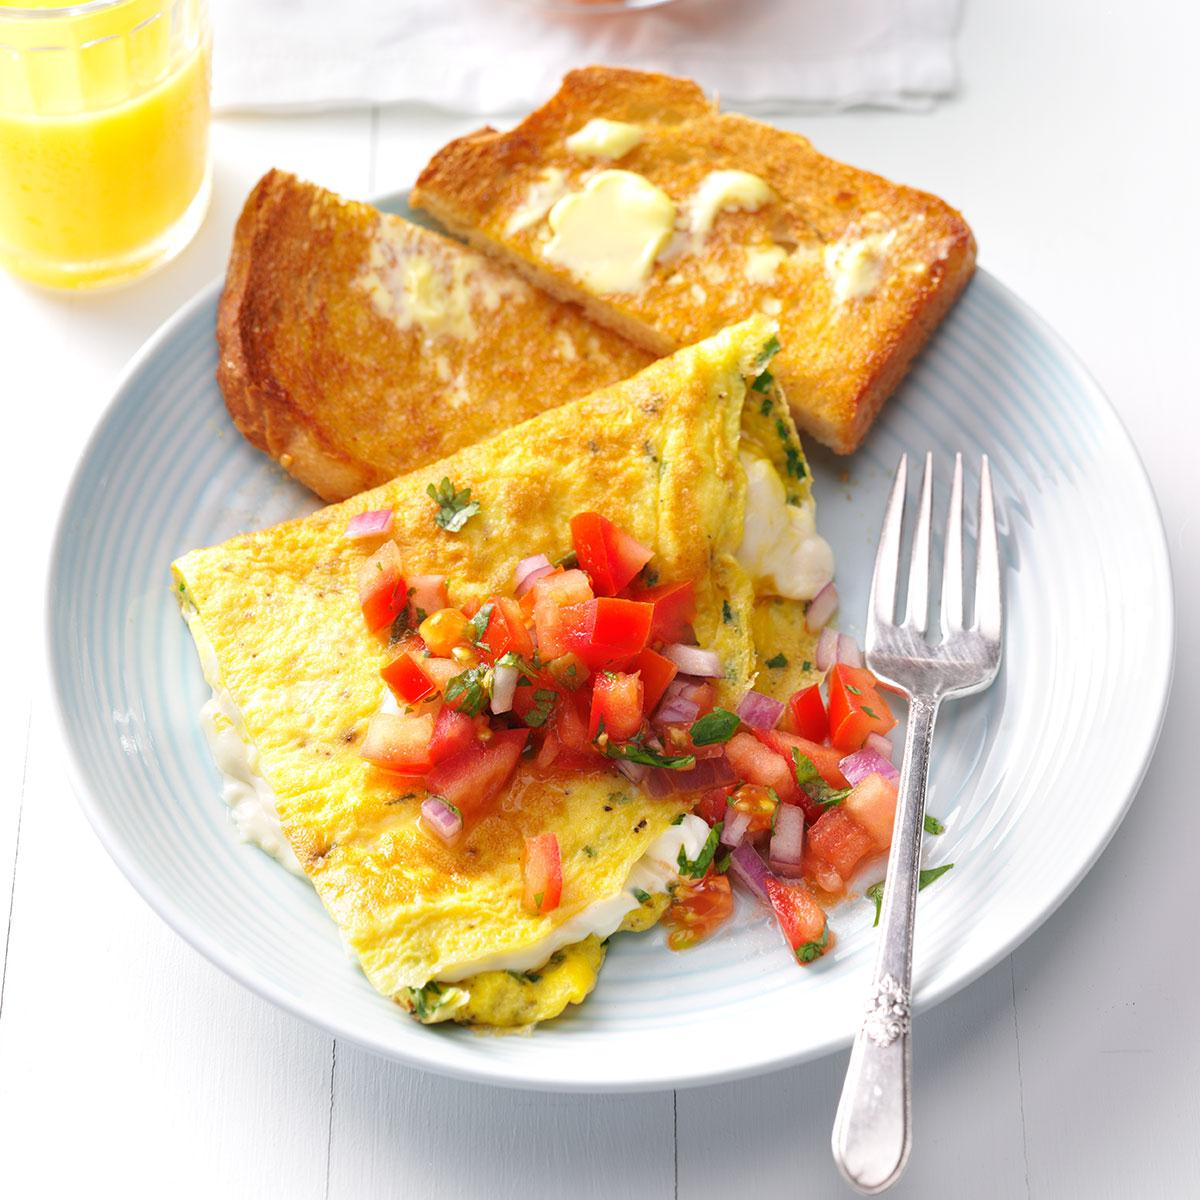 Easy Breakfast Dish: Cream Cheese & Chive Omelet Recipe